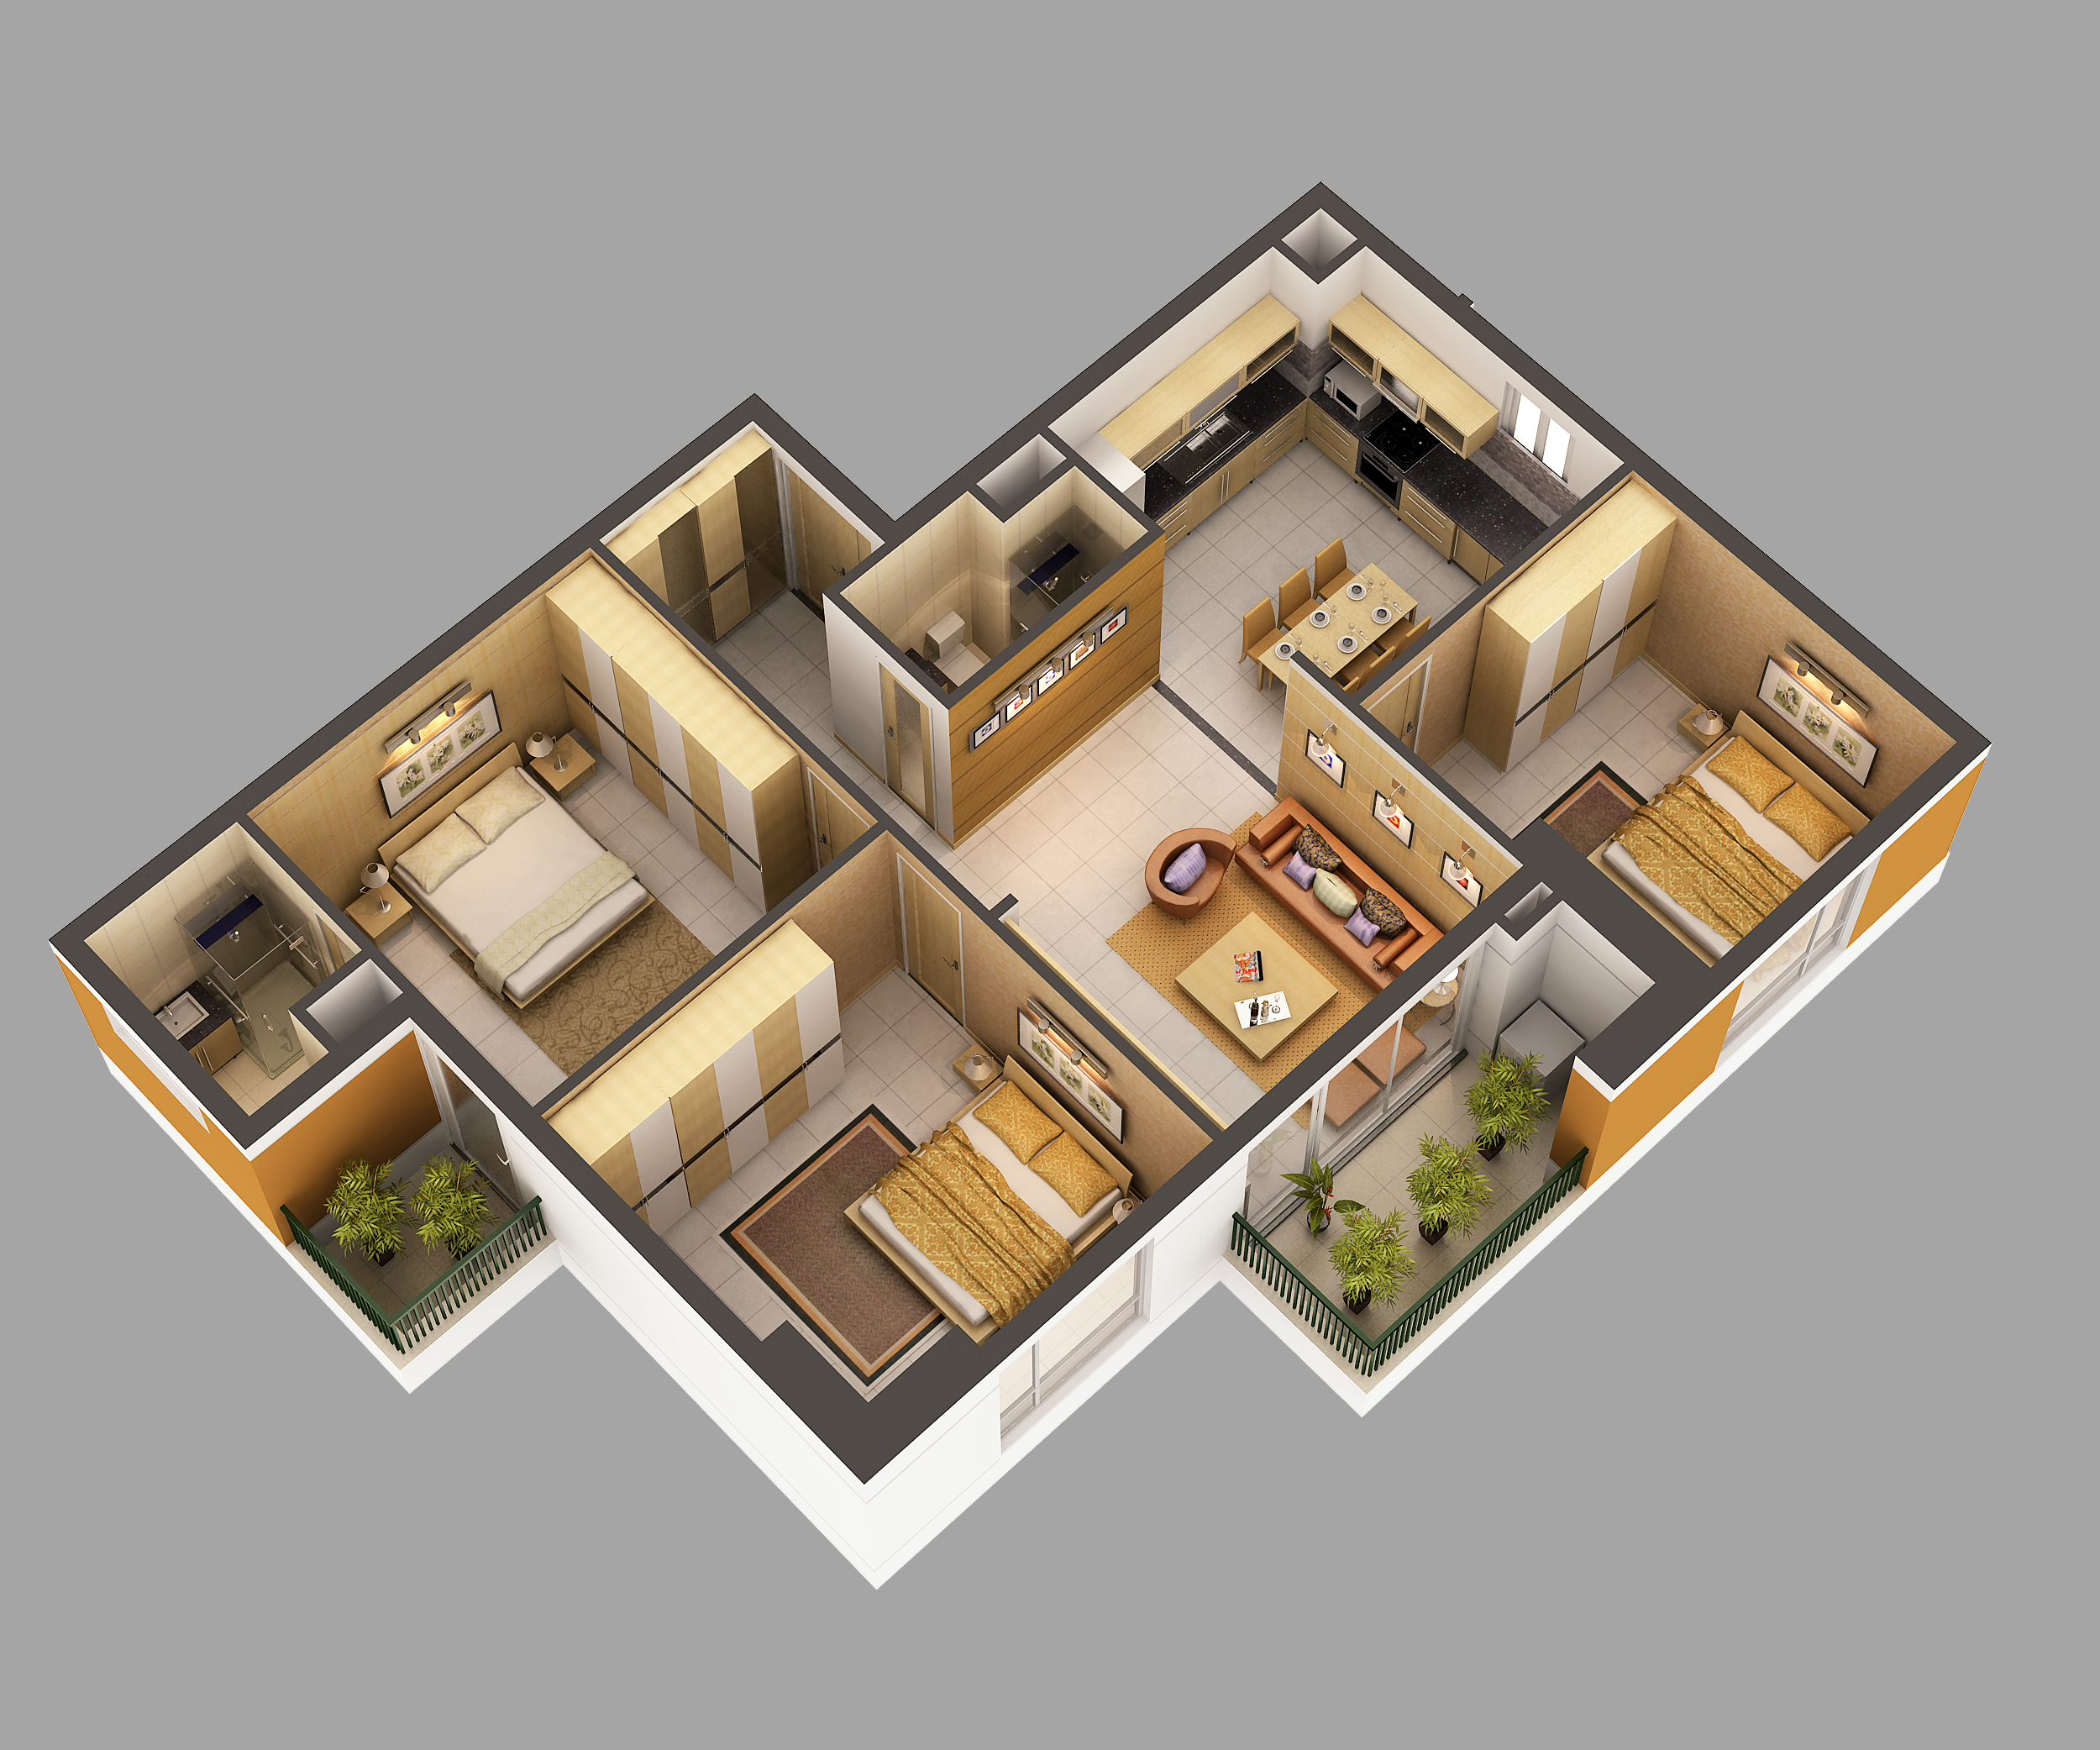 3d model home interior fully furnished 3d model max for House designs 3d model